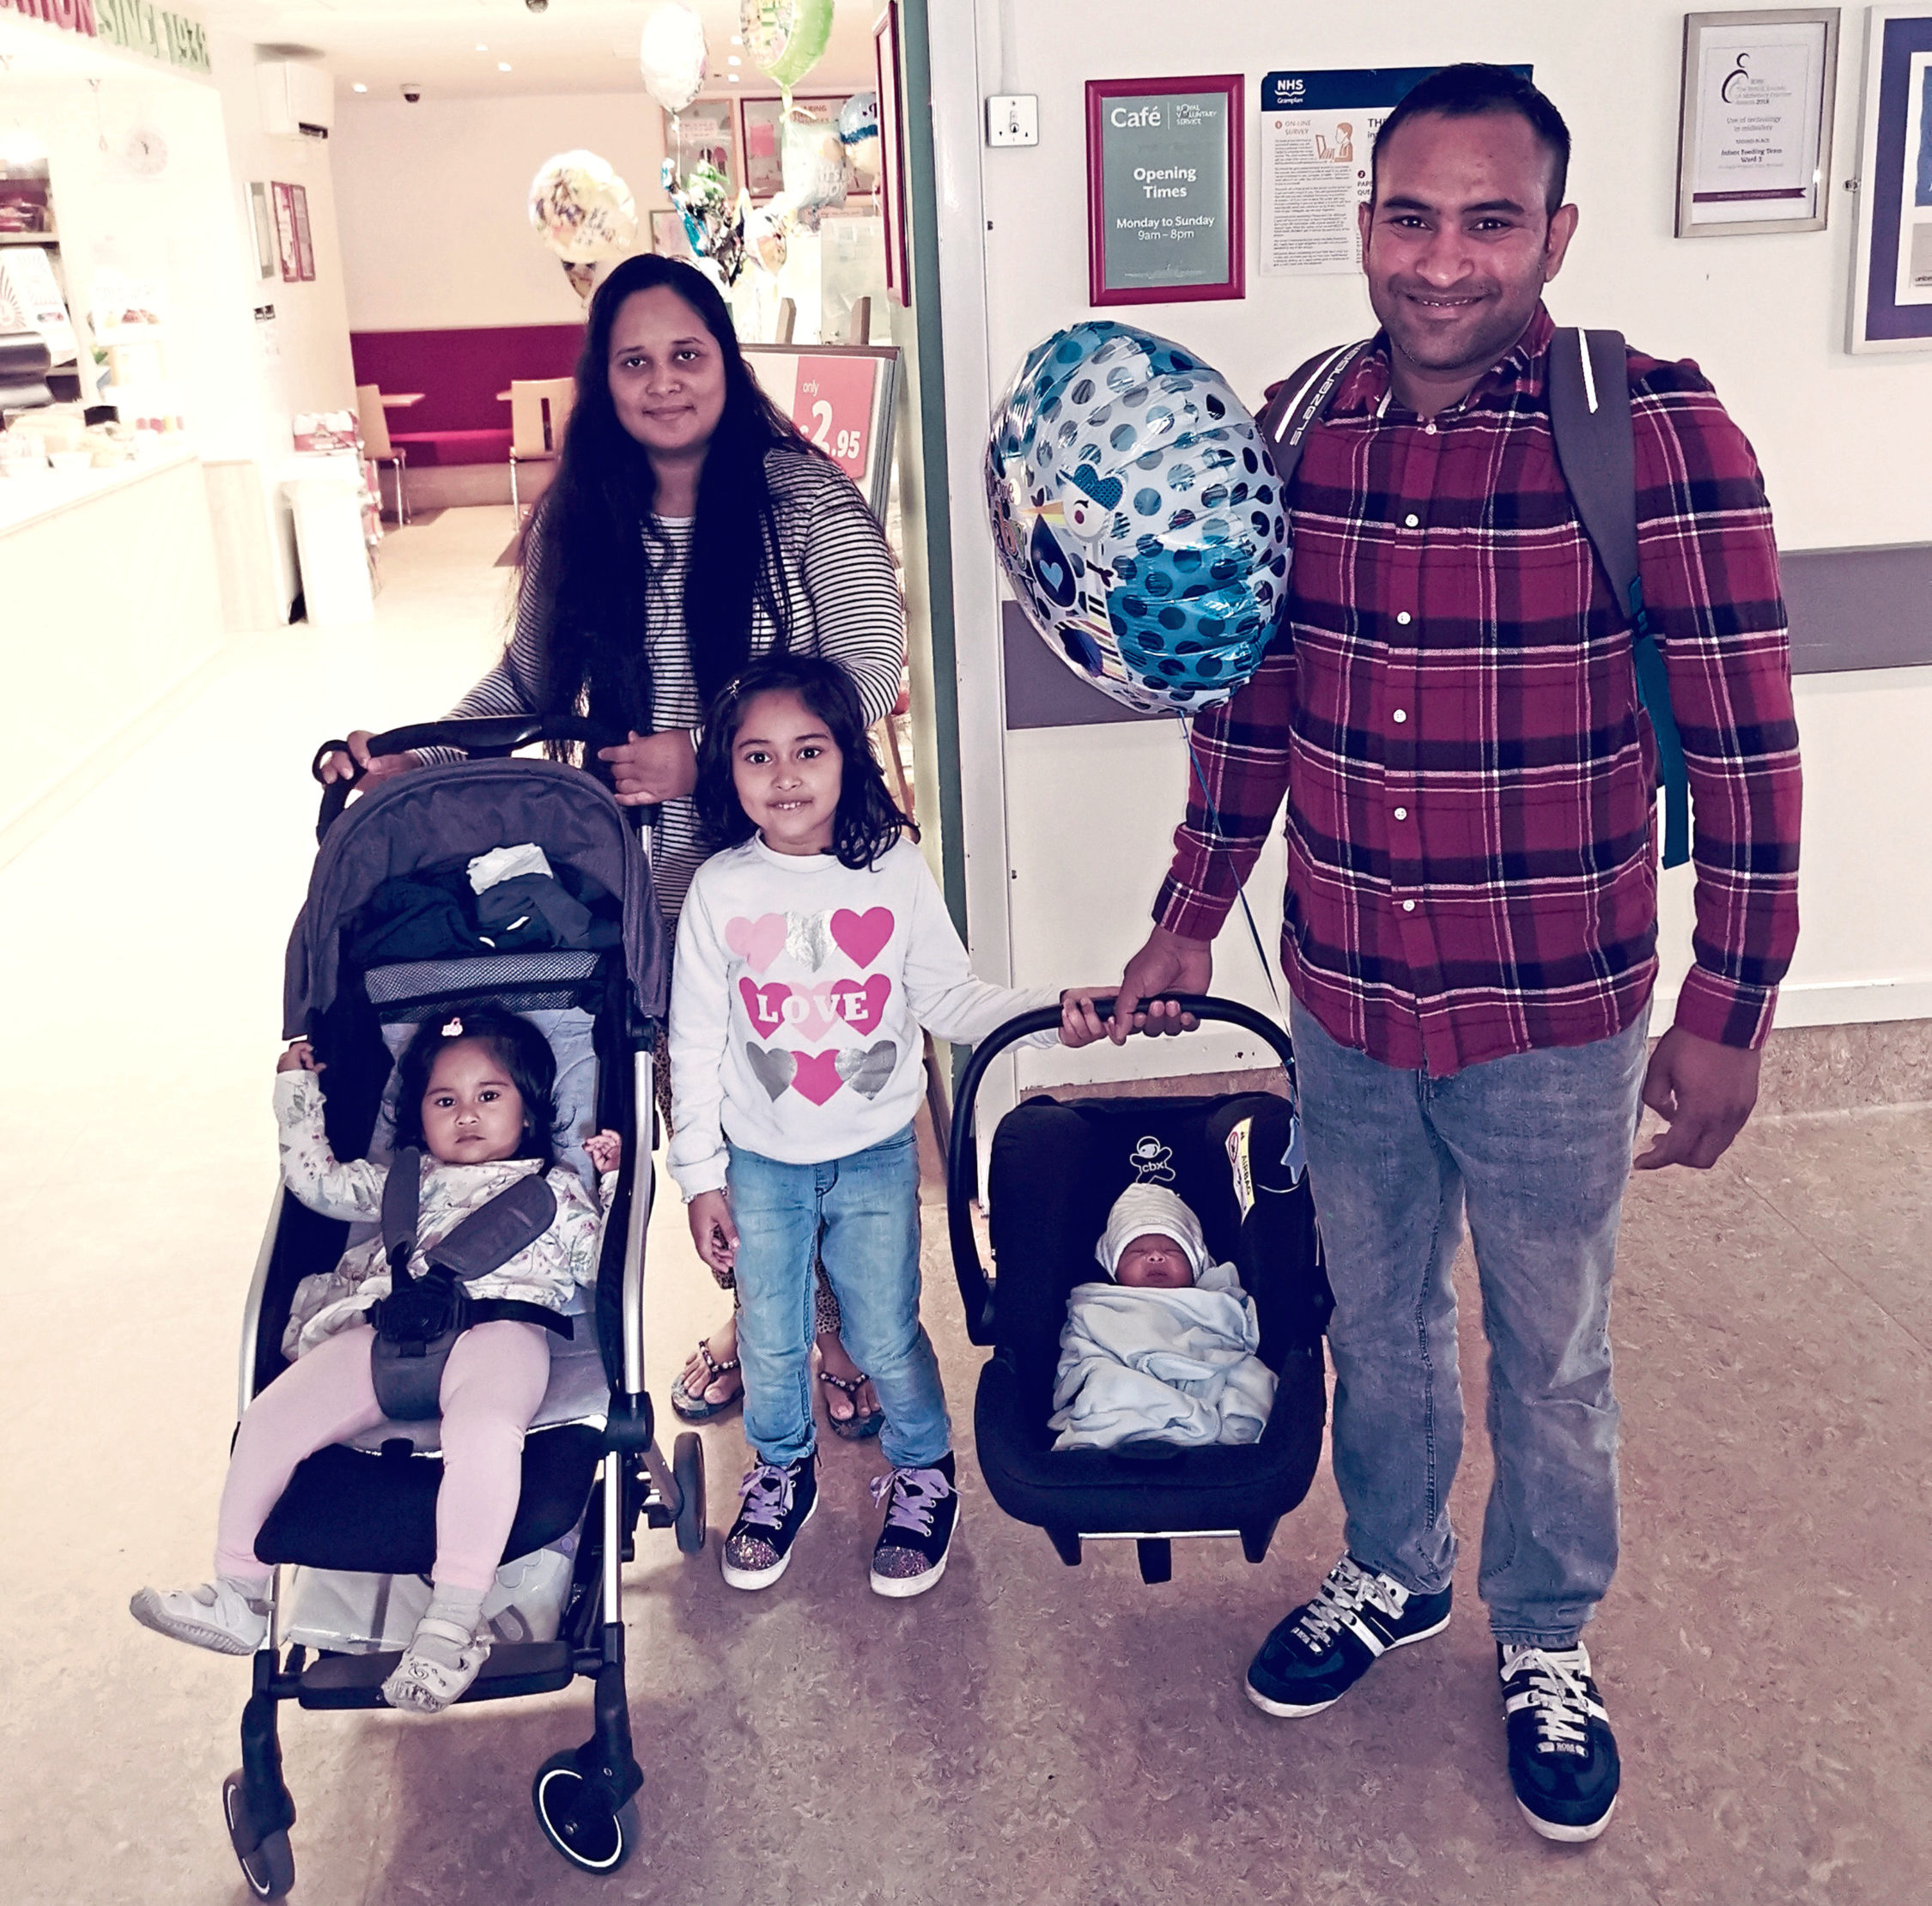 Business owner Nafiz Hasan with his family.